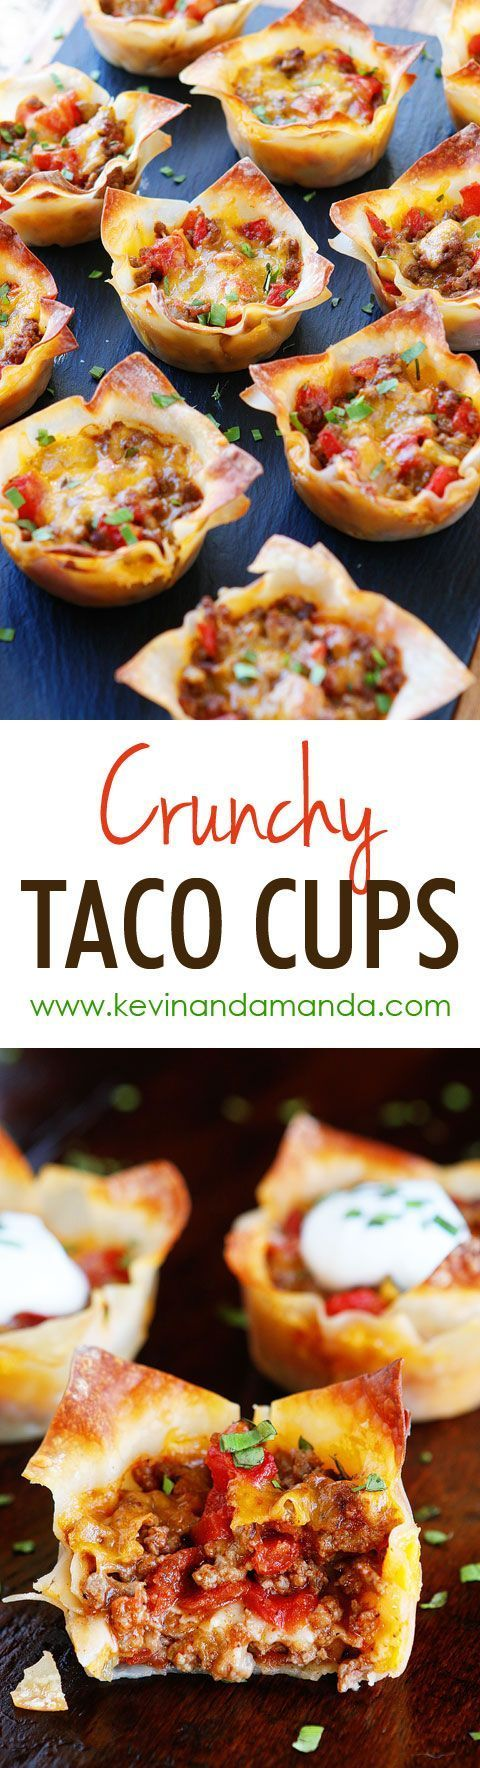 These fun Crunchy Taco Cups are made in a muffin tin with wonton wrappers! Great for a taco party/bar. Everyone can add their own ingredients and toppings! Crunchy, delicious, and fun to eat! (Muffin Recette Healthy)